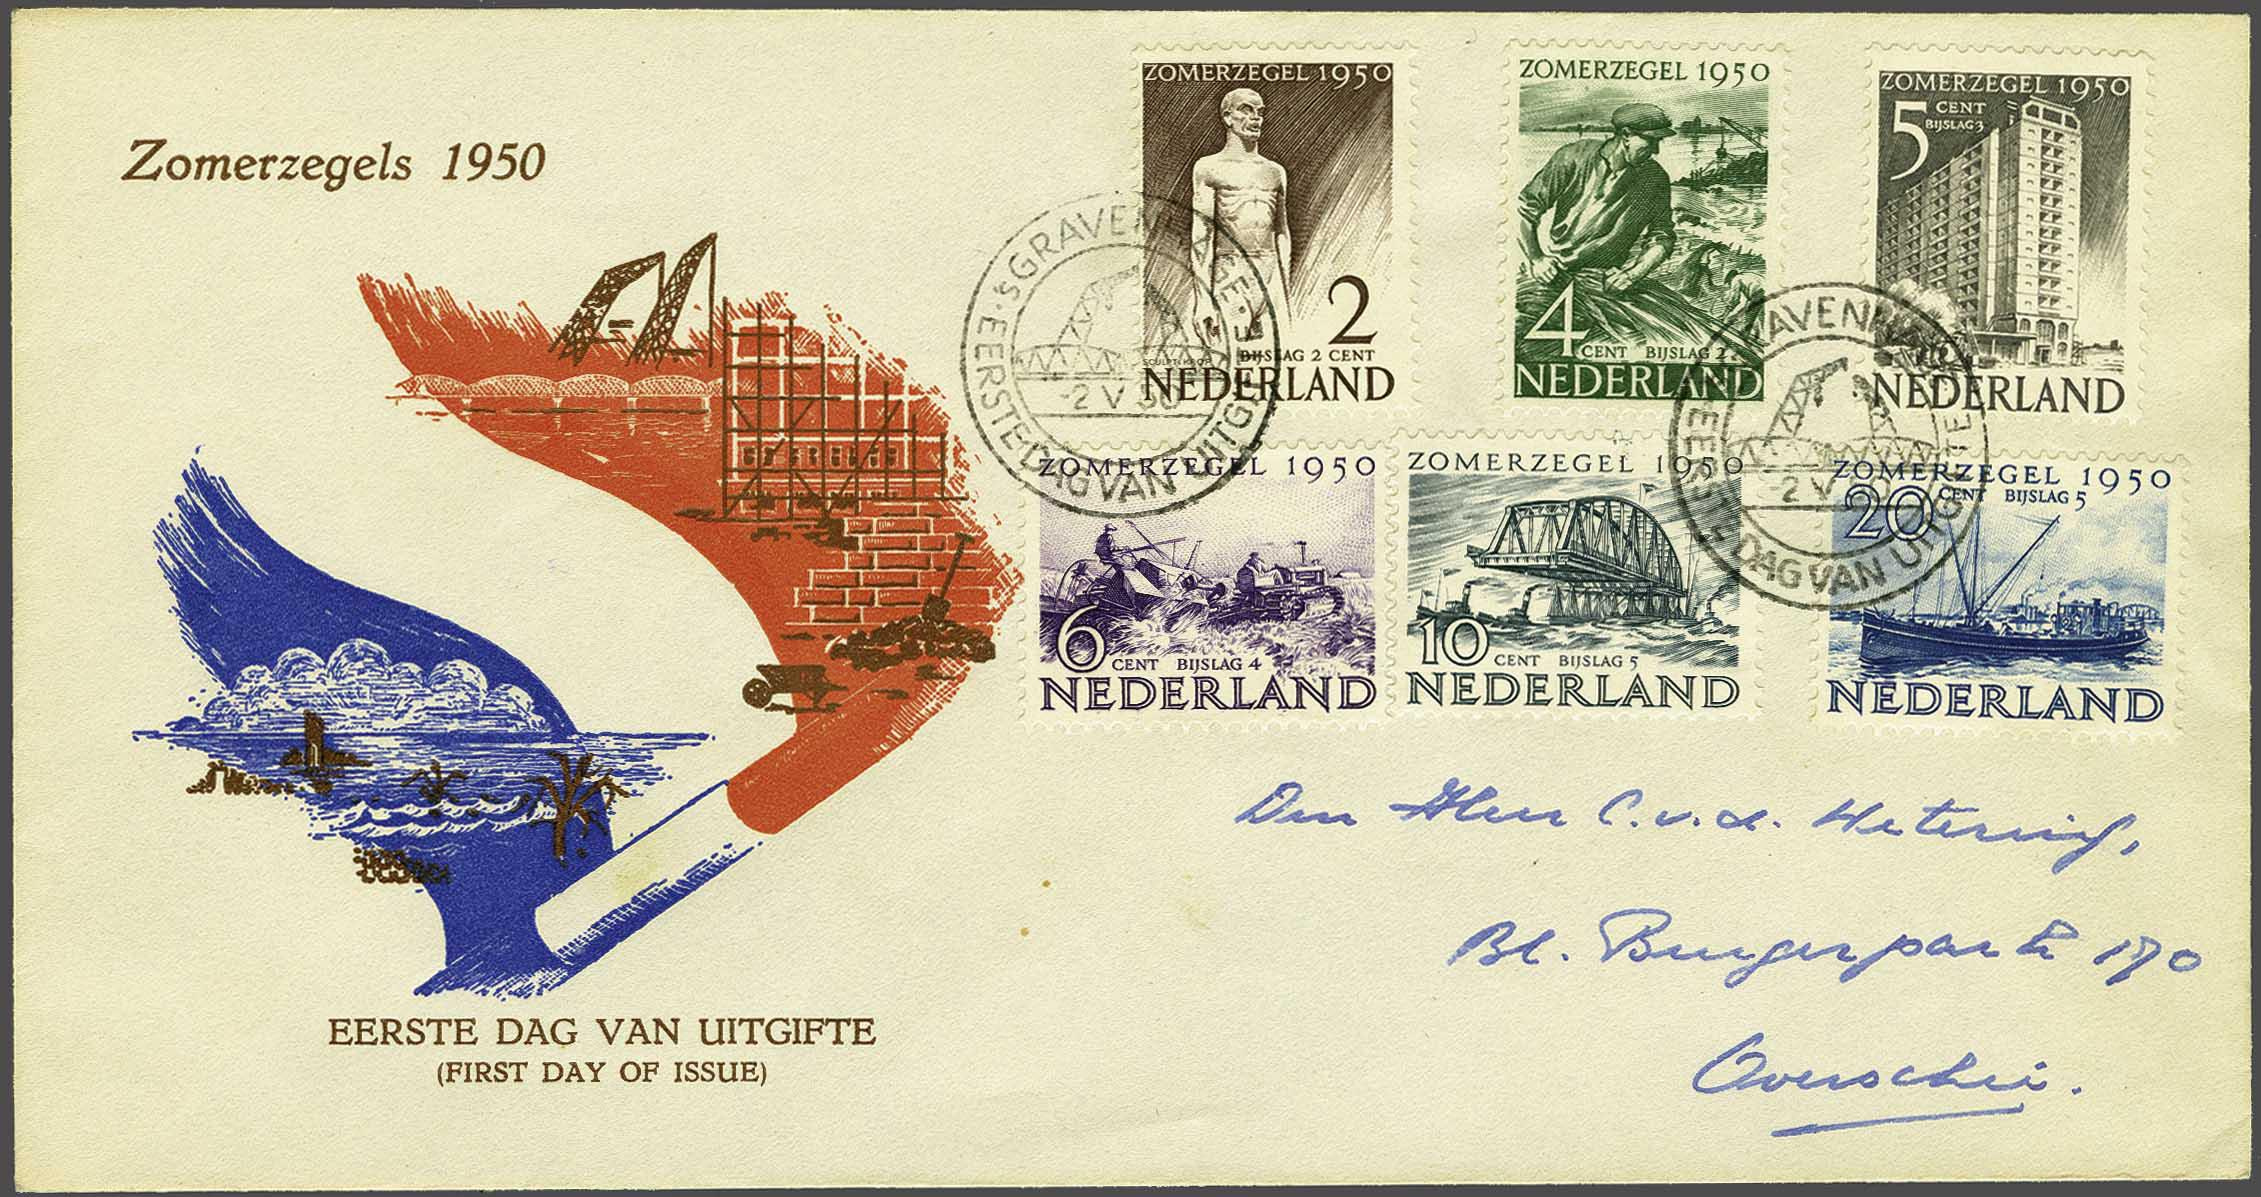 Lot 1906 - Netherlands and former colonies Netherlands -  Corinphila Veilingen Auction 245-246 Day 3 - Netherlands and former colonies - Single lots, Collections and lots, Boxes and literature